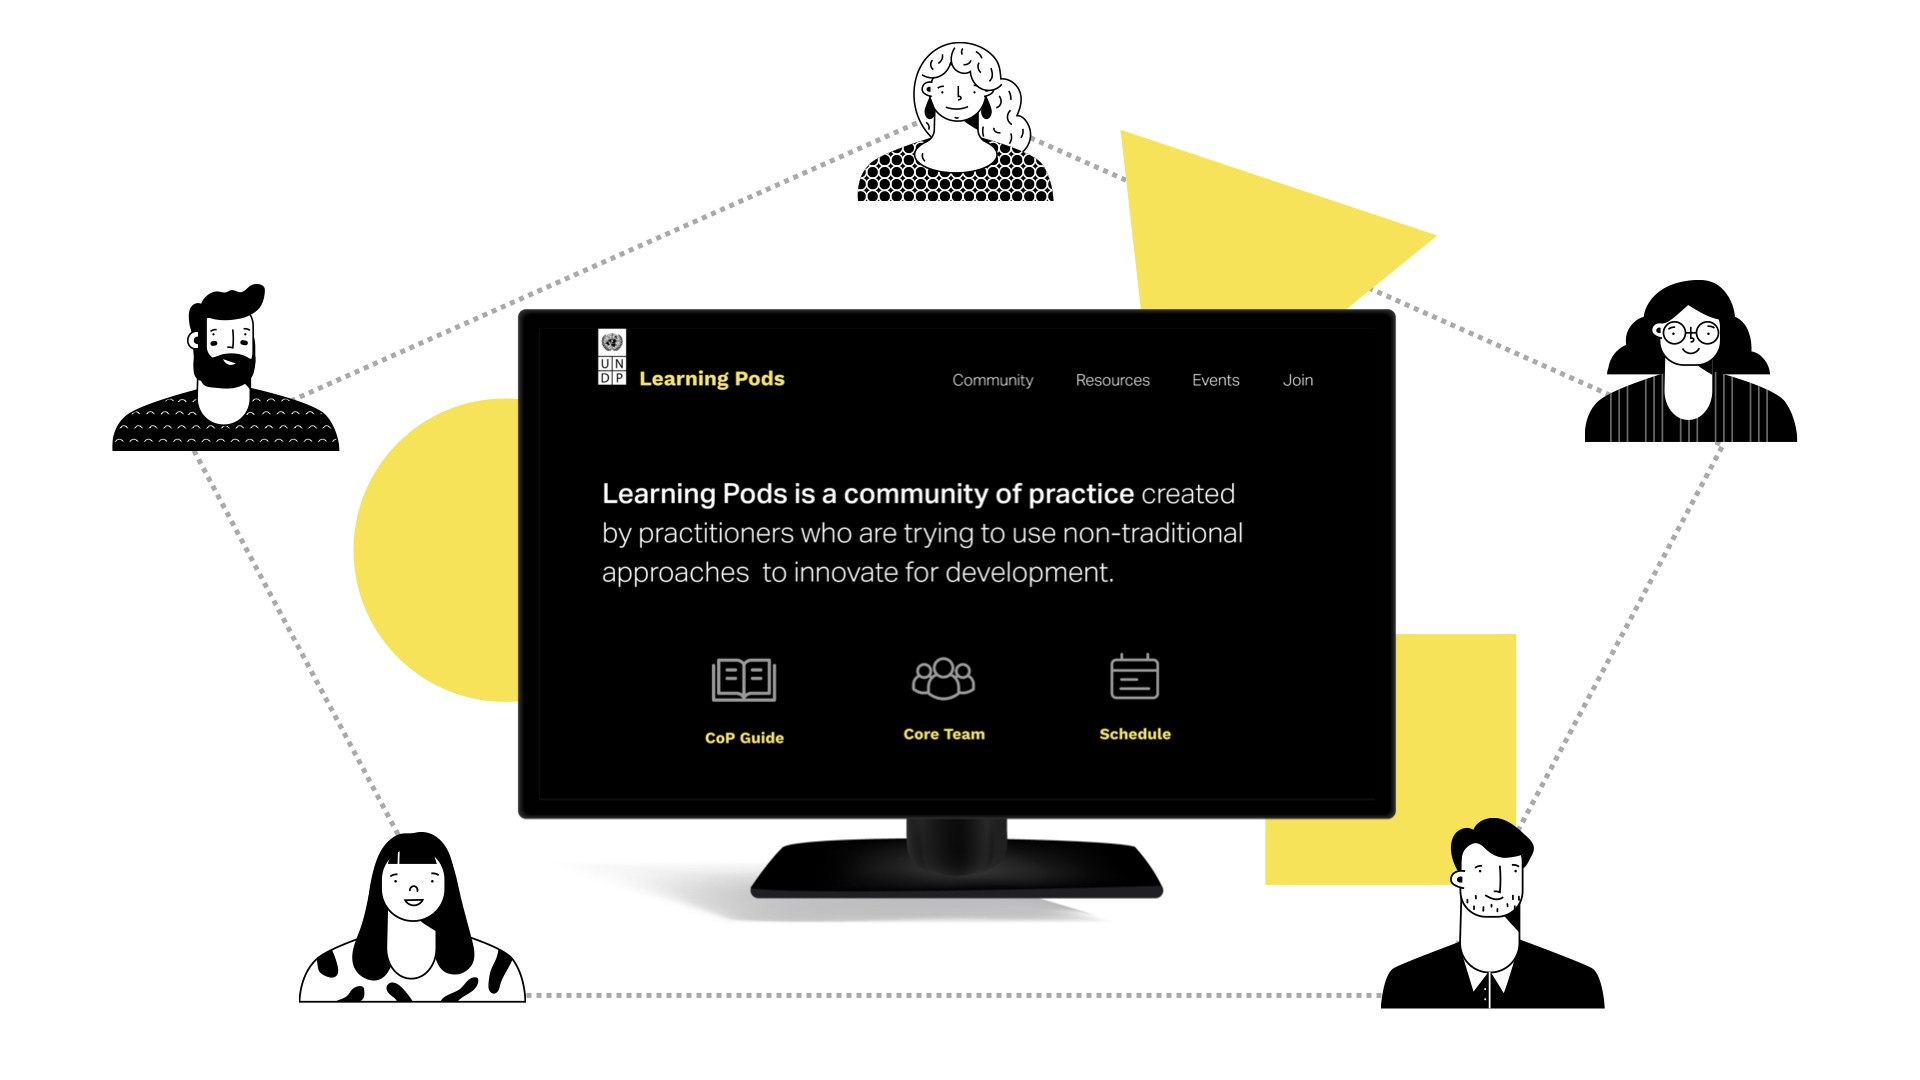 Learning Pods for the people in the system to engage in shared learning and build a community of practice.